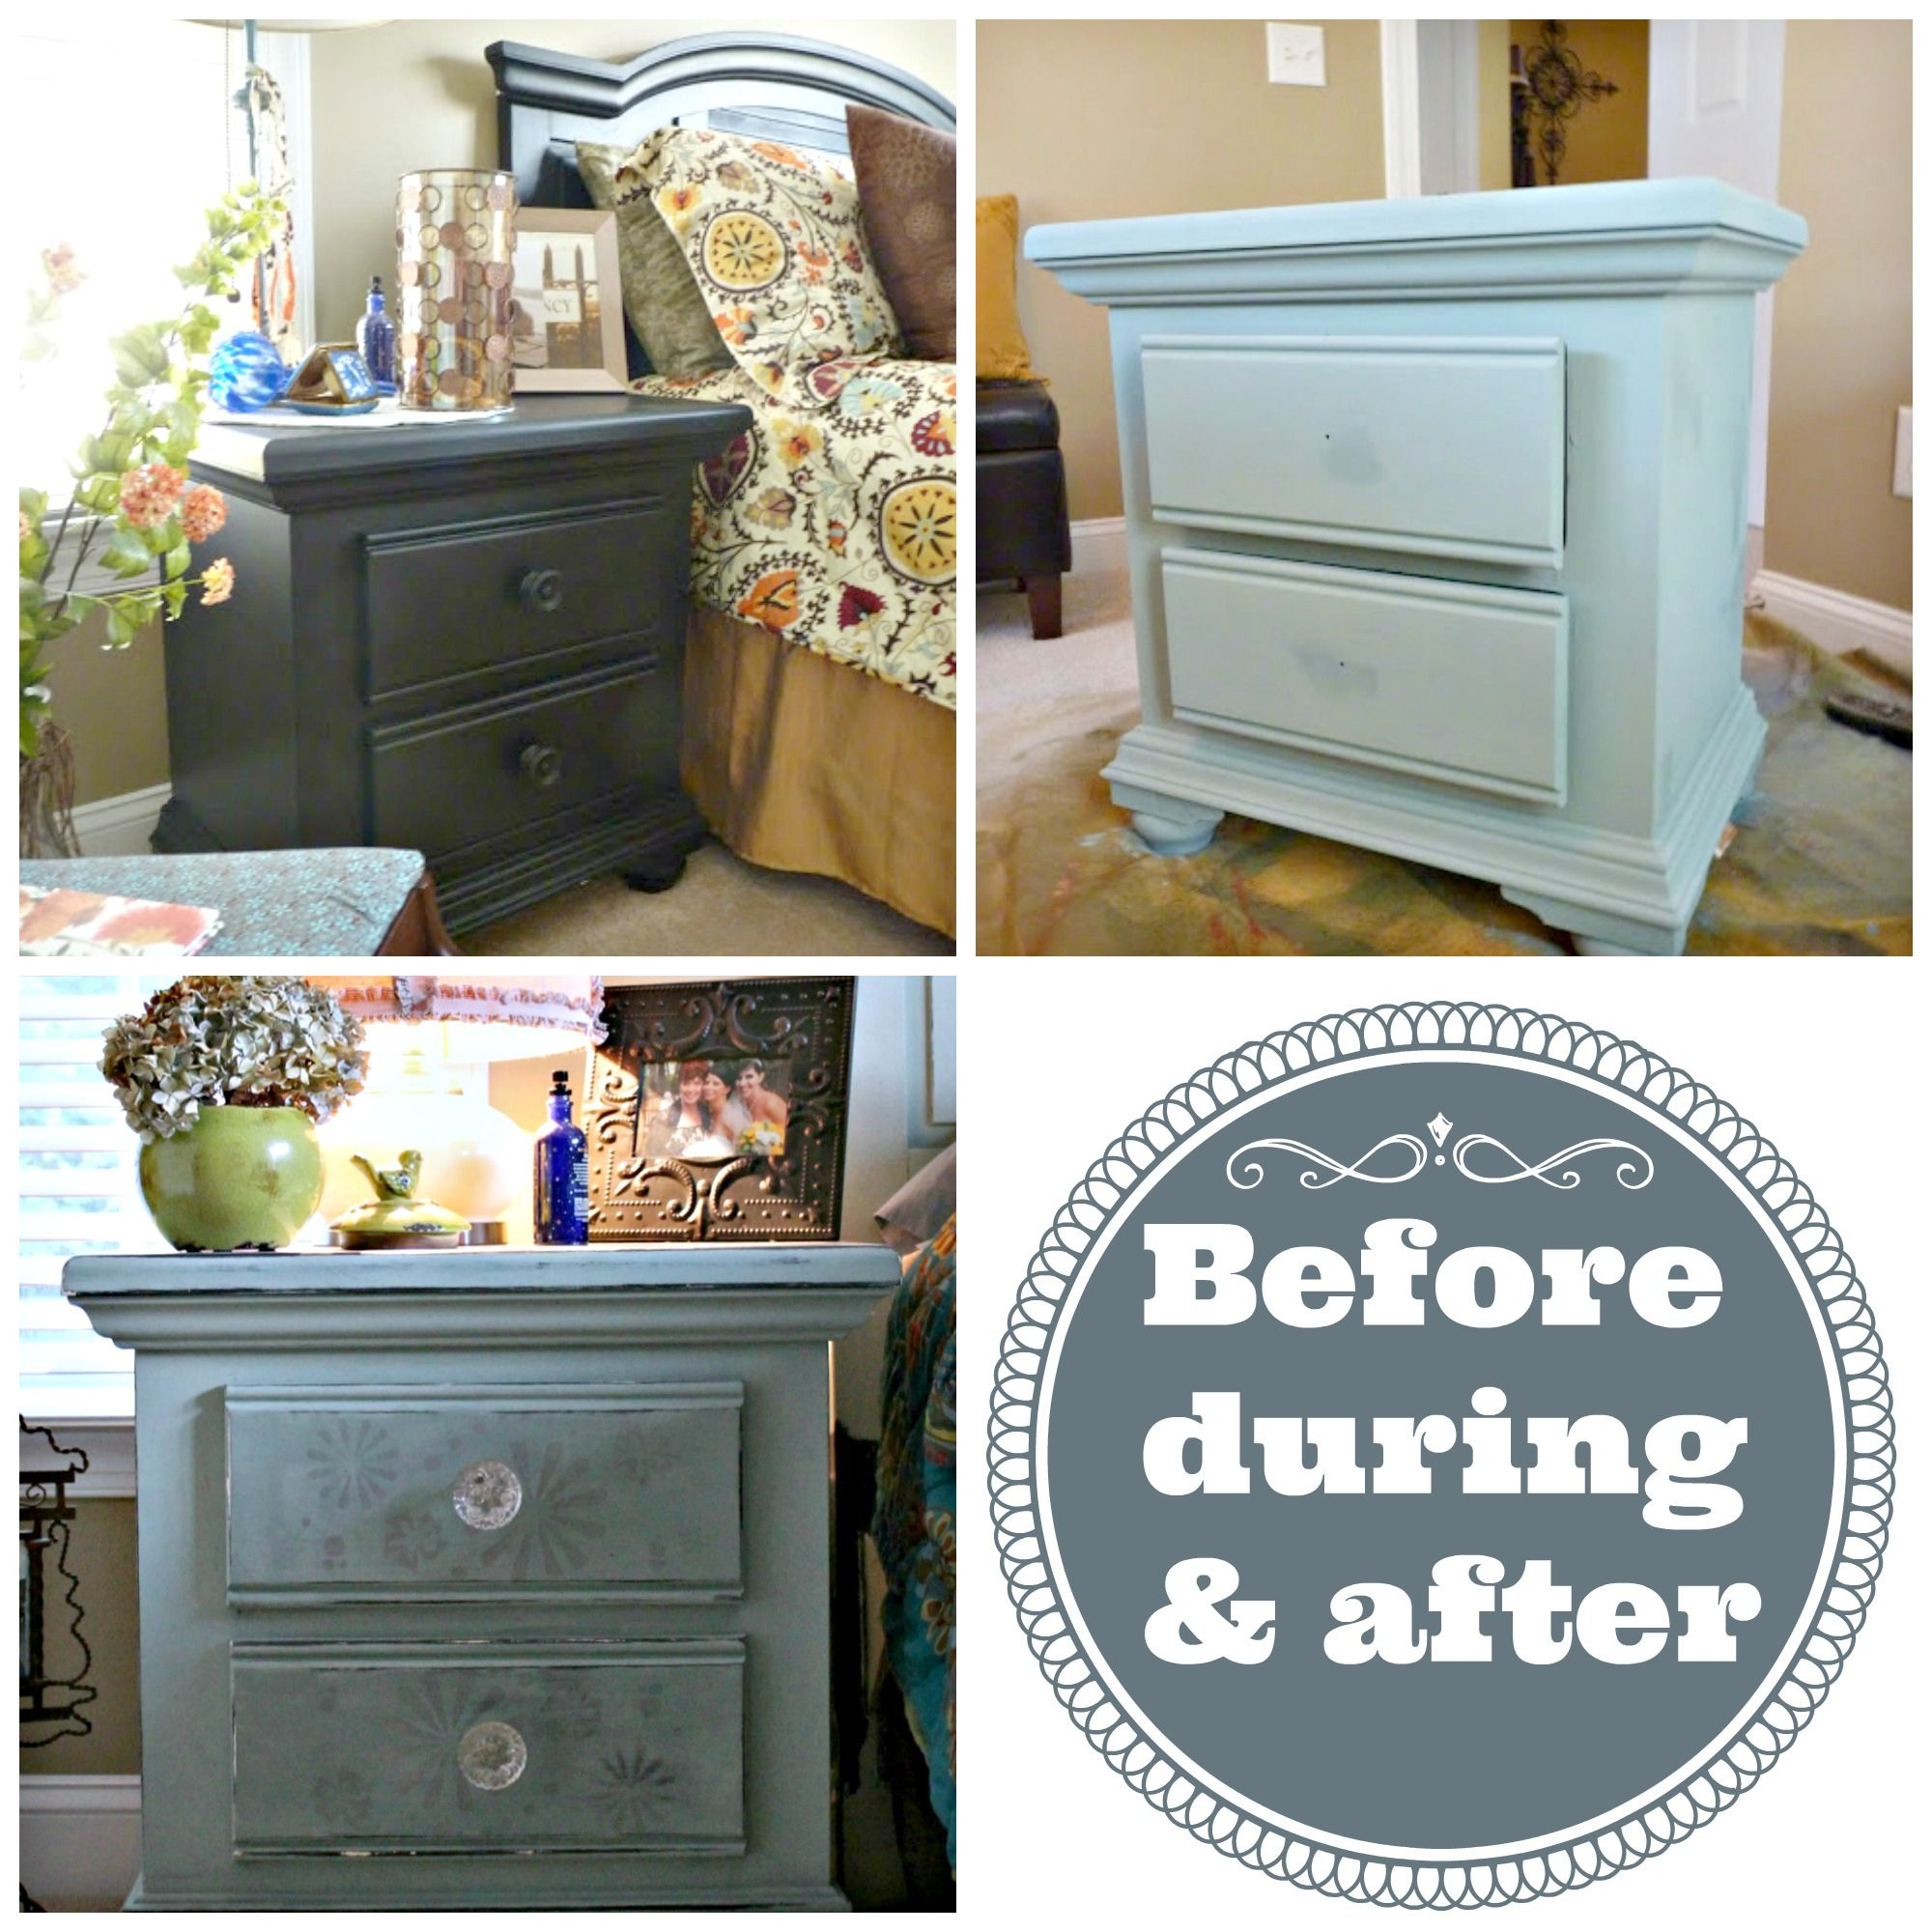 Painting furniture black before and after - Black Furniture Painted Duck Egg Blue With Annie Sloan Chalk Paint